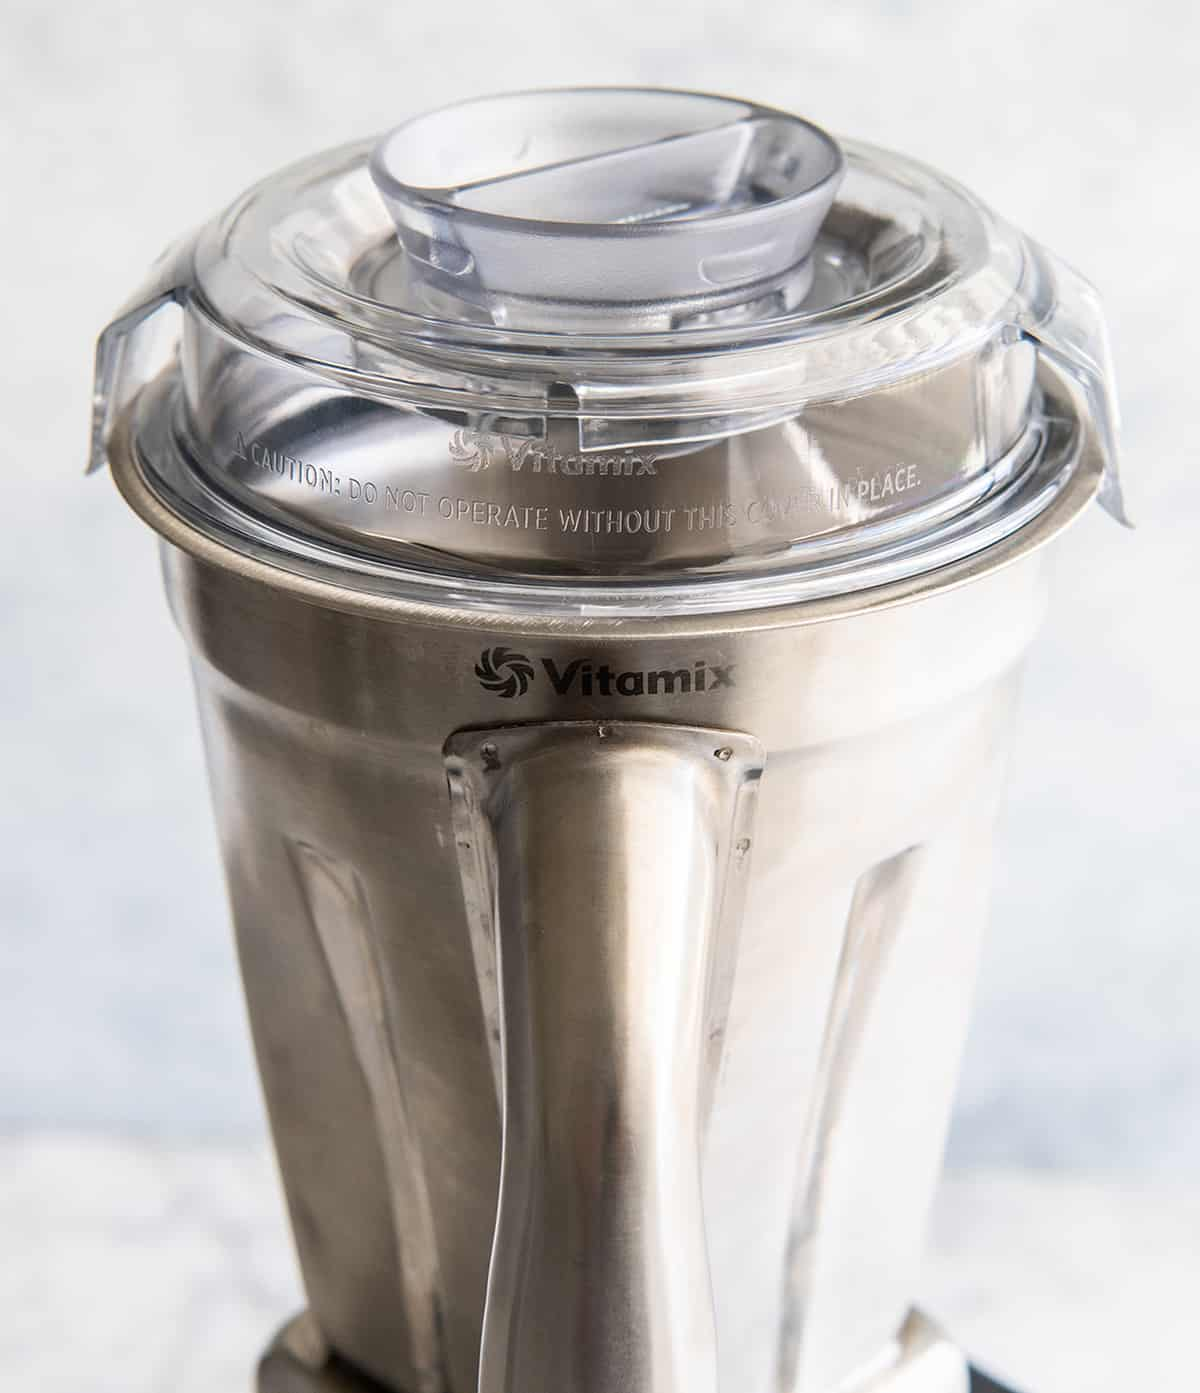 Handle view of the Vitamix Stainless Steel Container